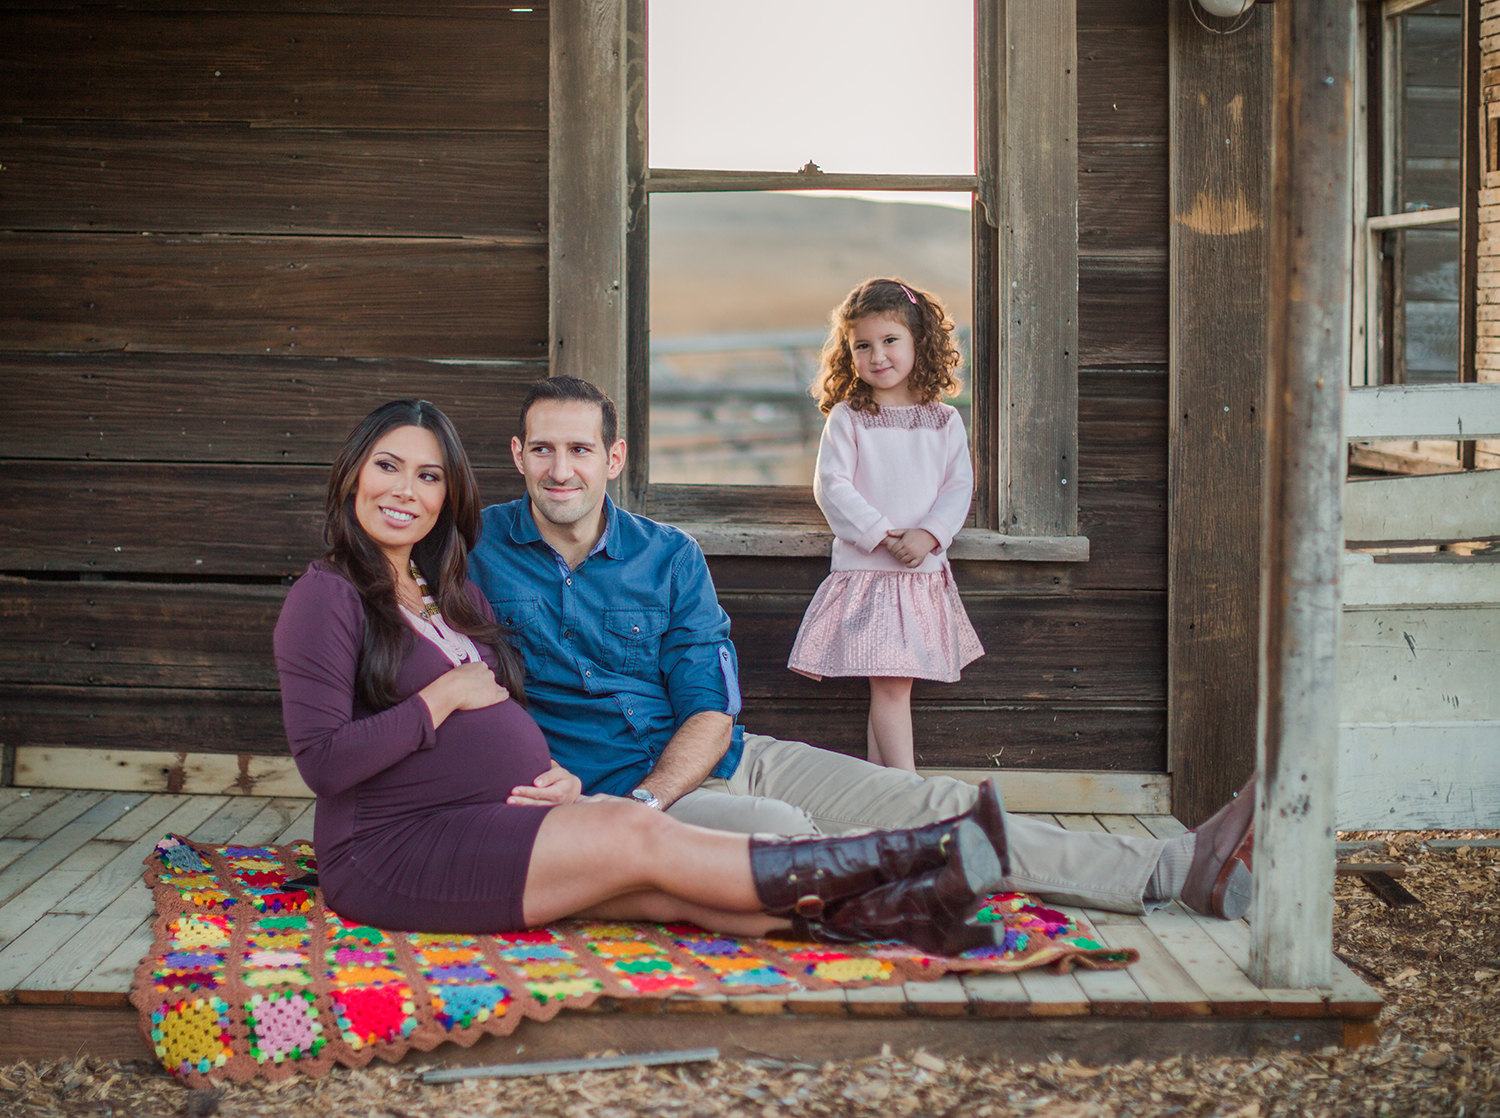 Dena_Rooney_Maternity_Portraits_005.jpg